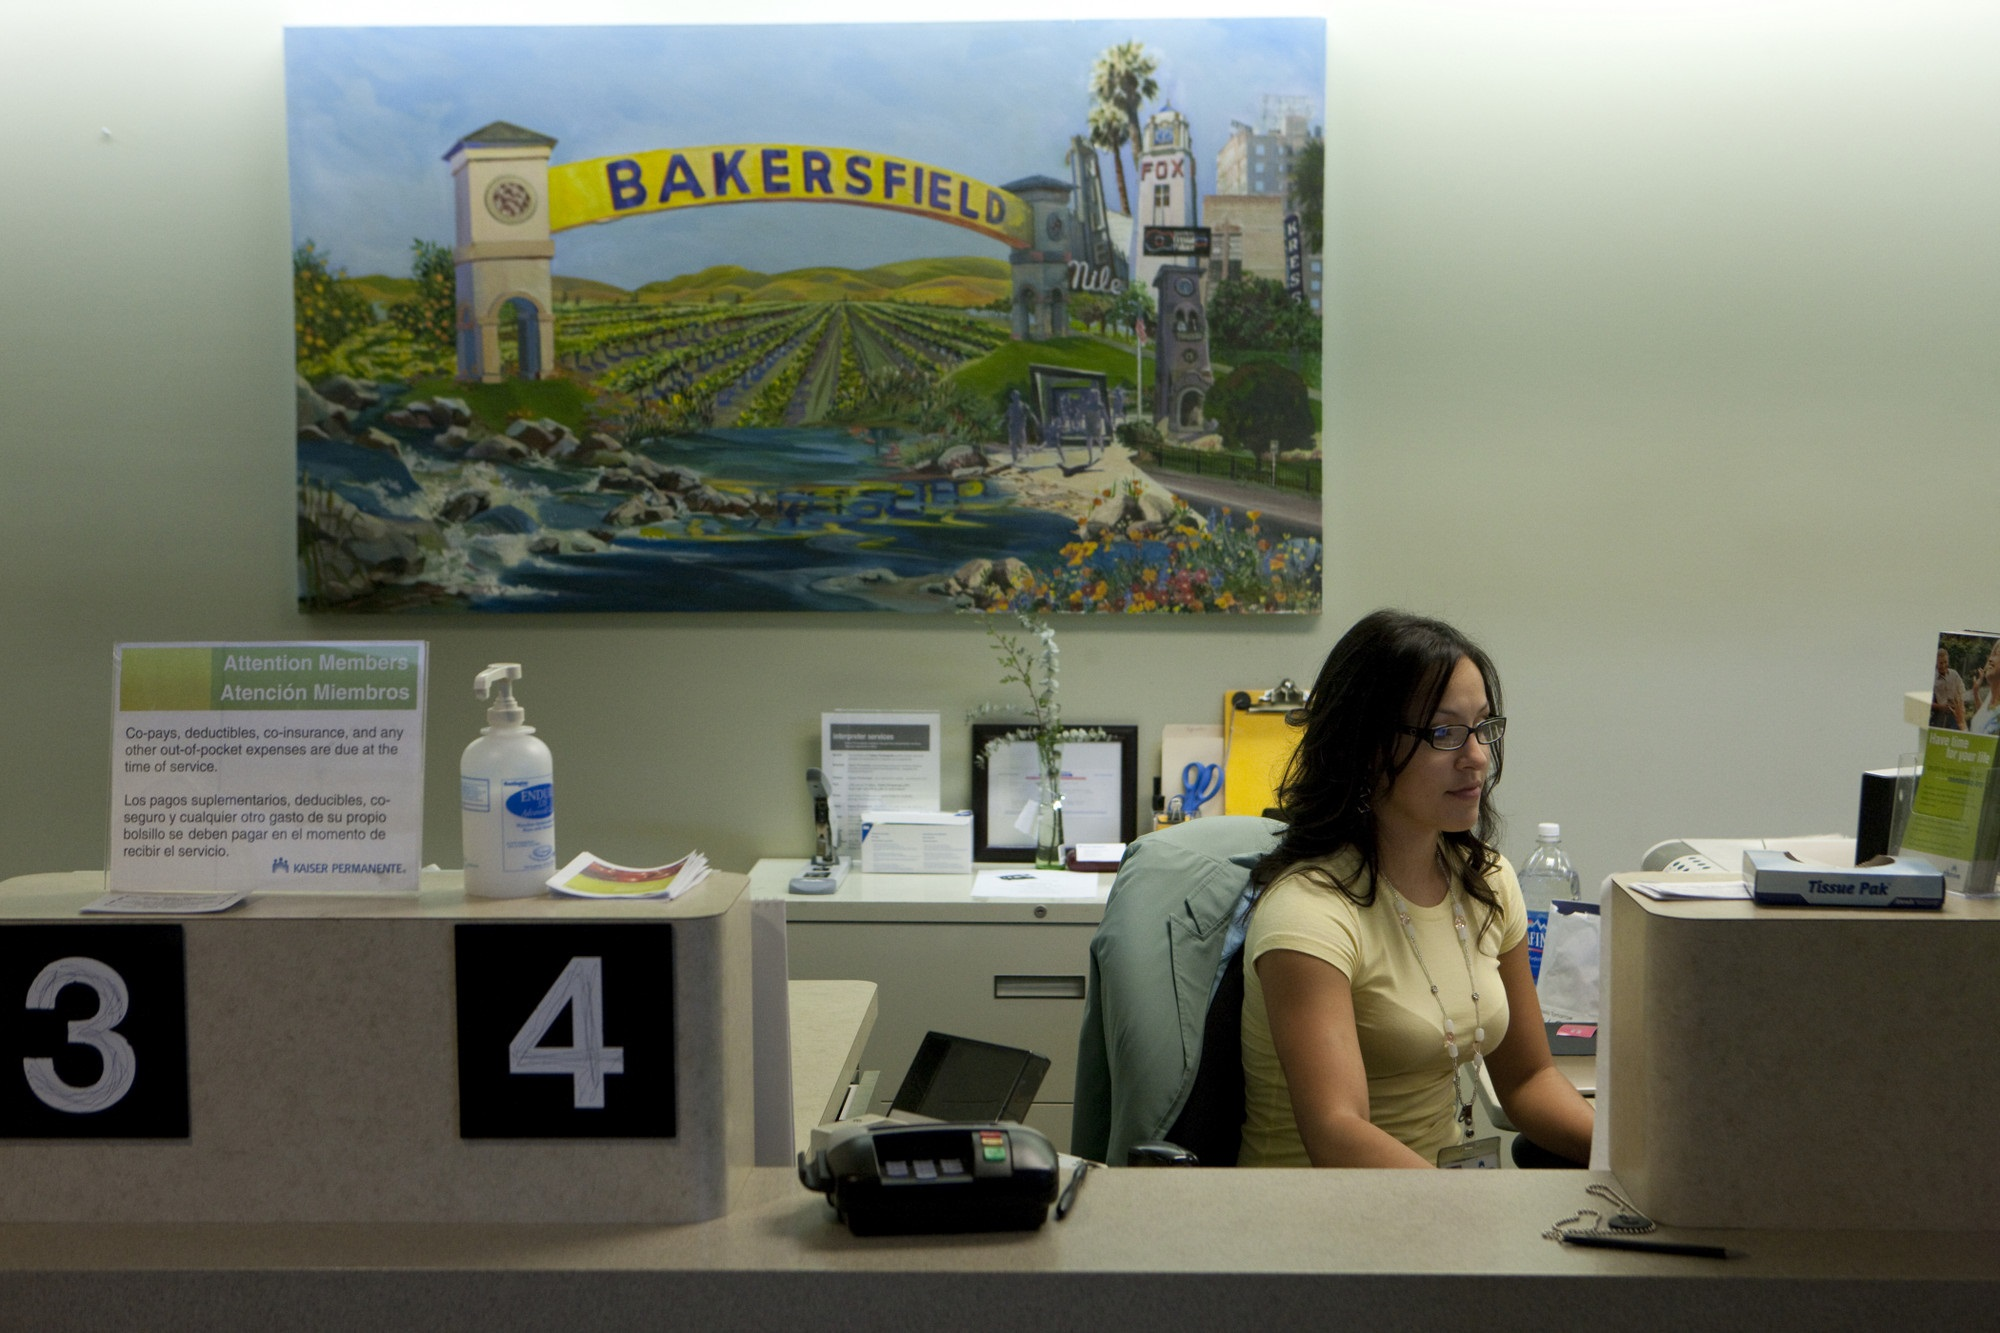 Receptionist at her desk under a painting of Bakersfield